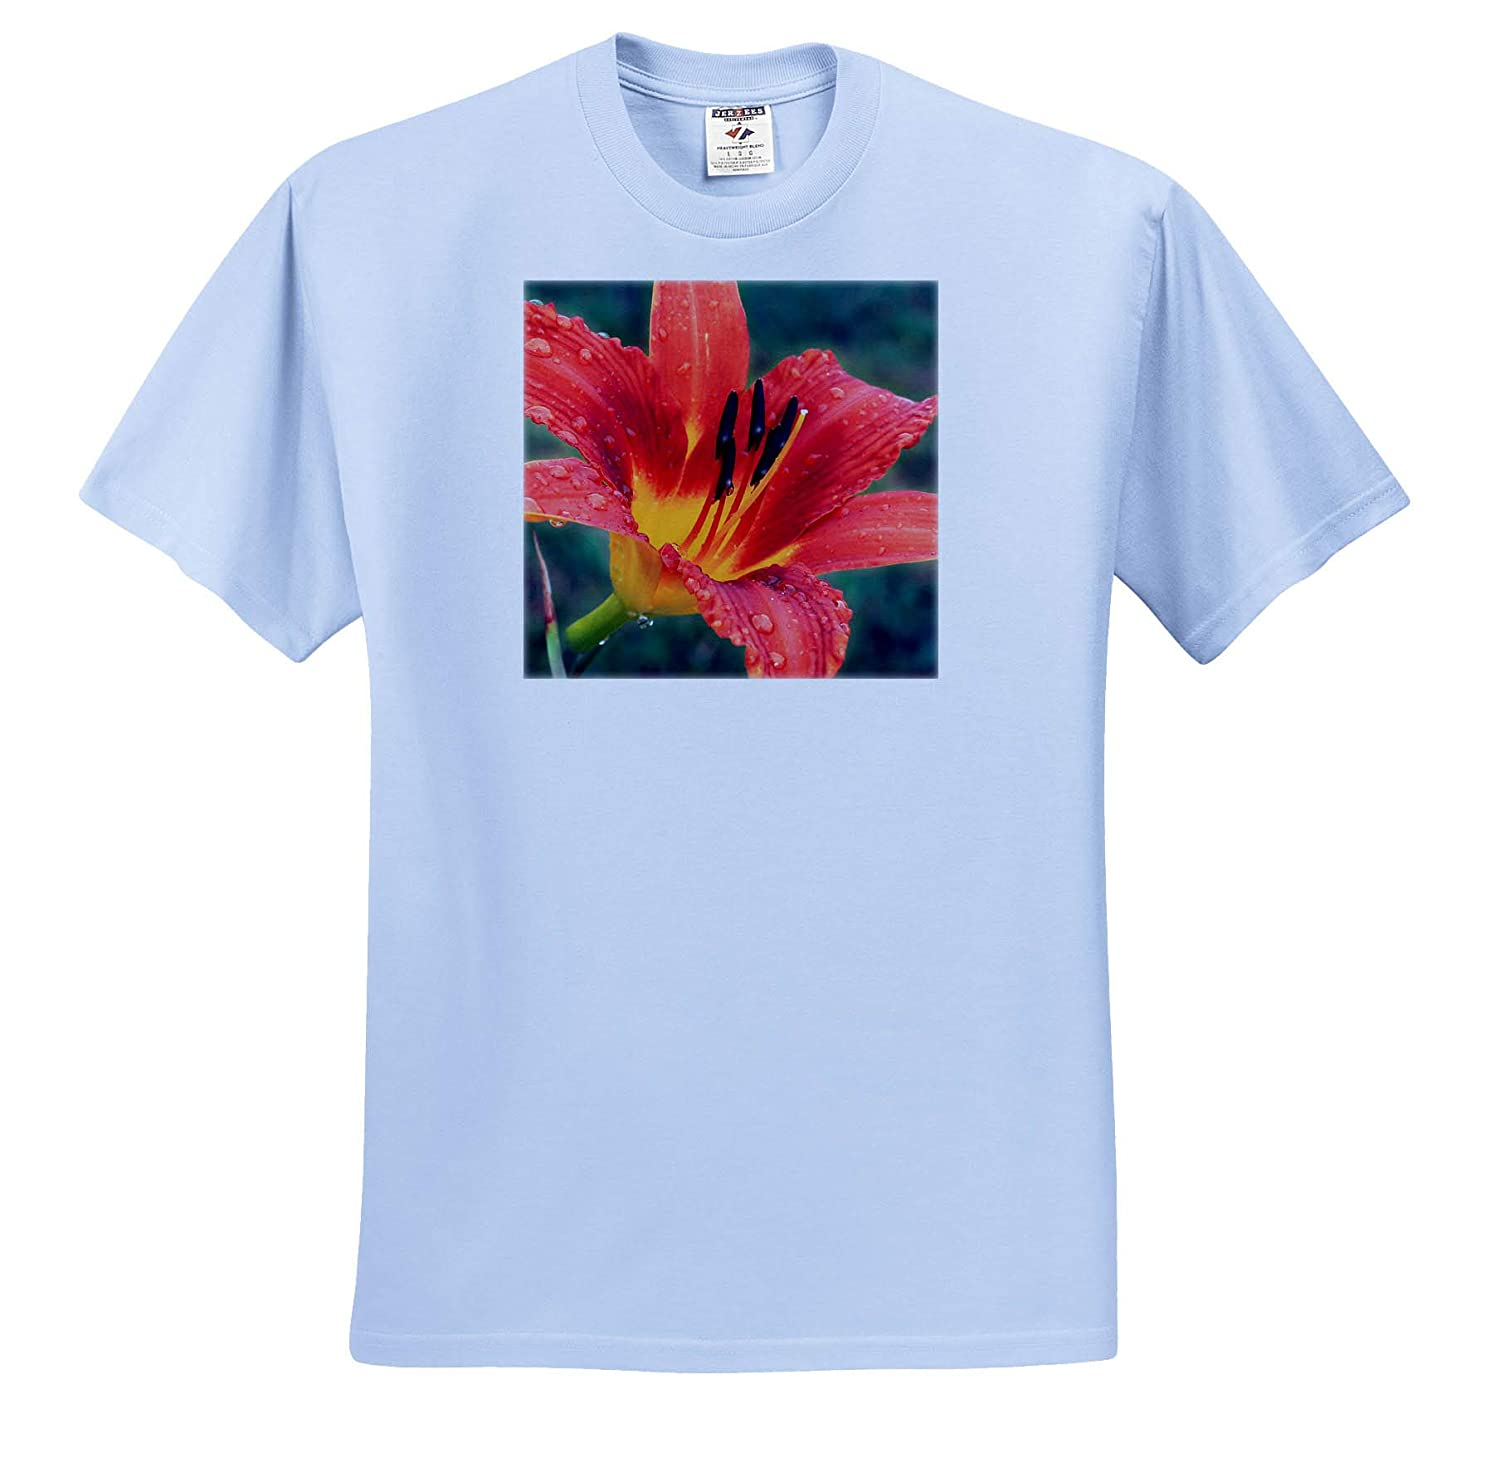 3dRose Stamp City Flowers - T-Shirts Photograph of an Orange Tiger from Our Our Garden After The rain